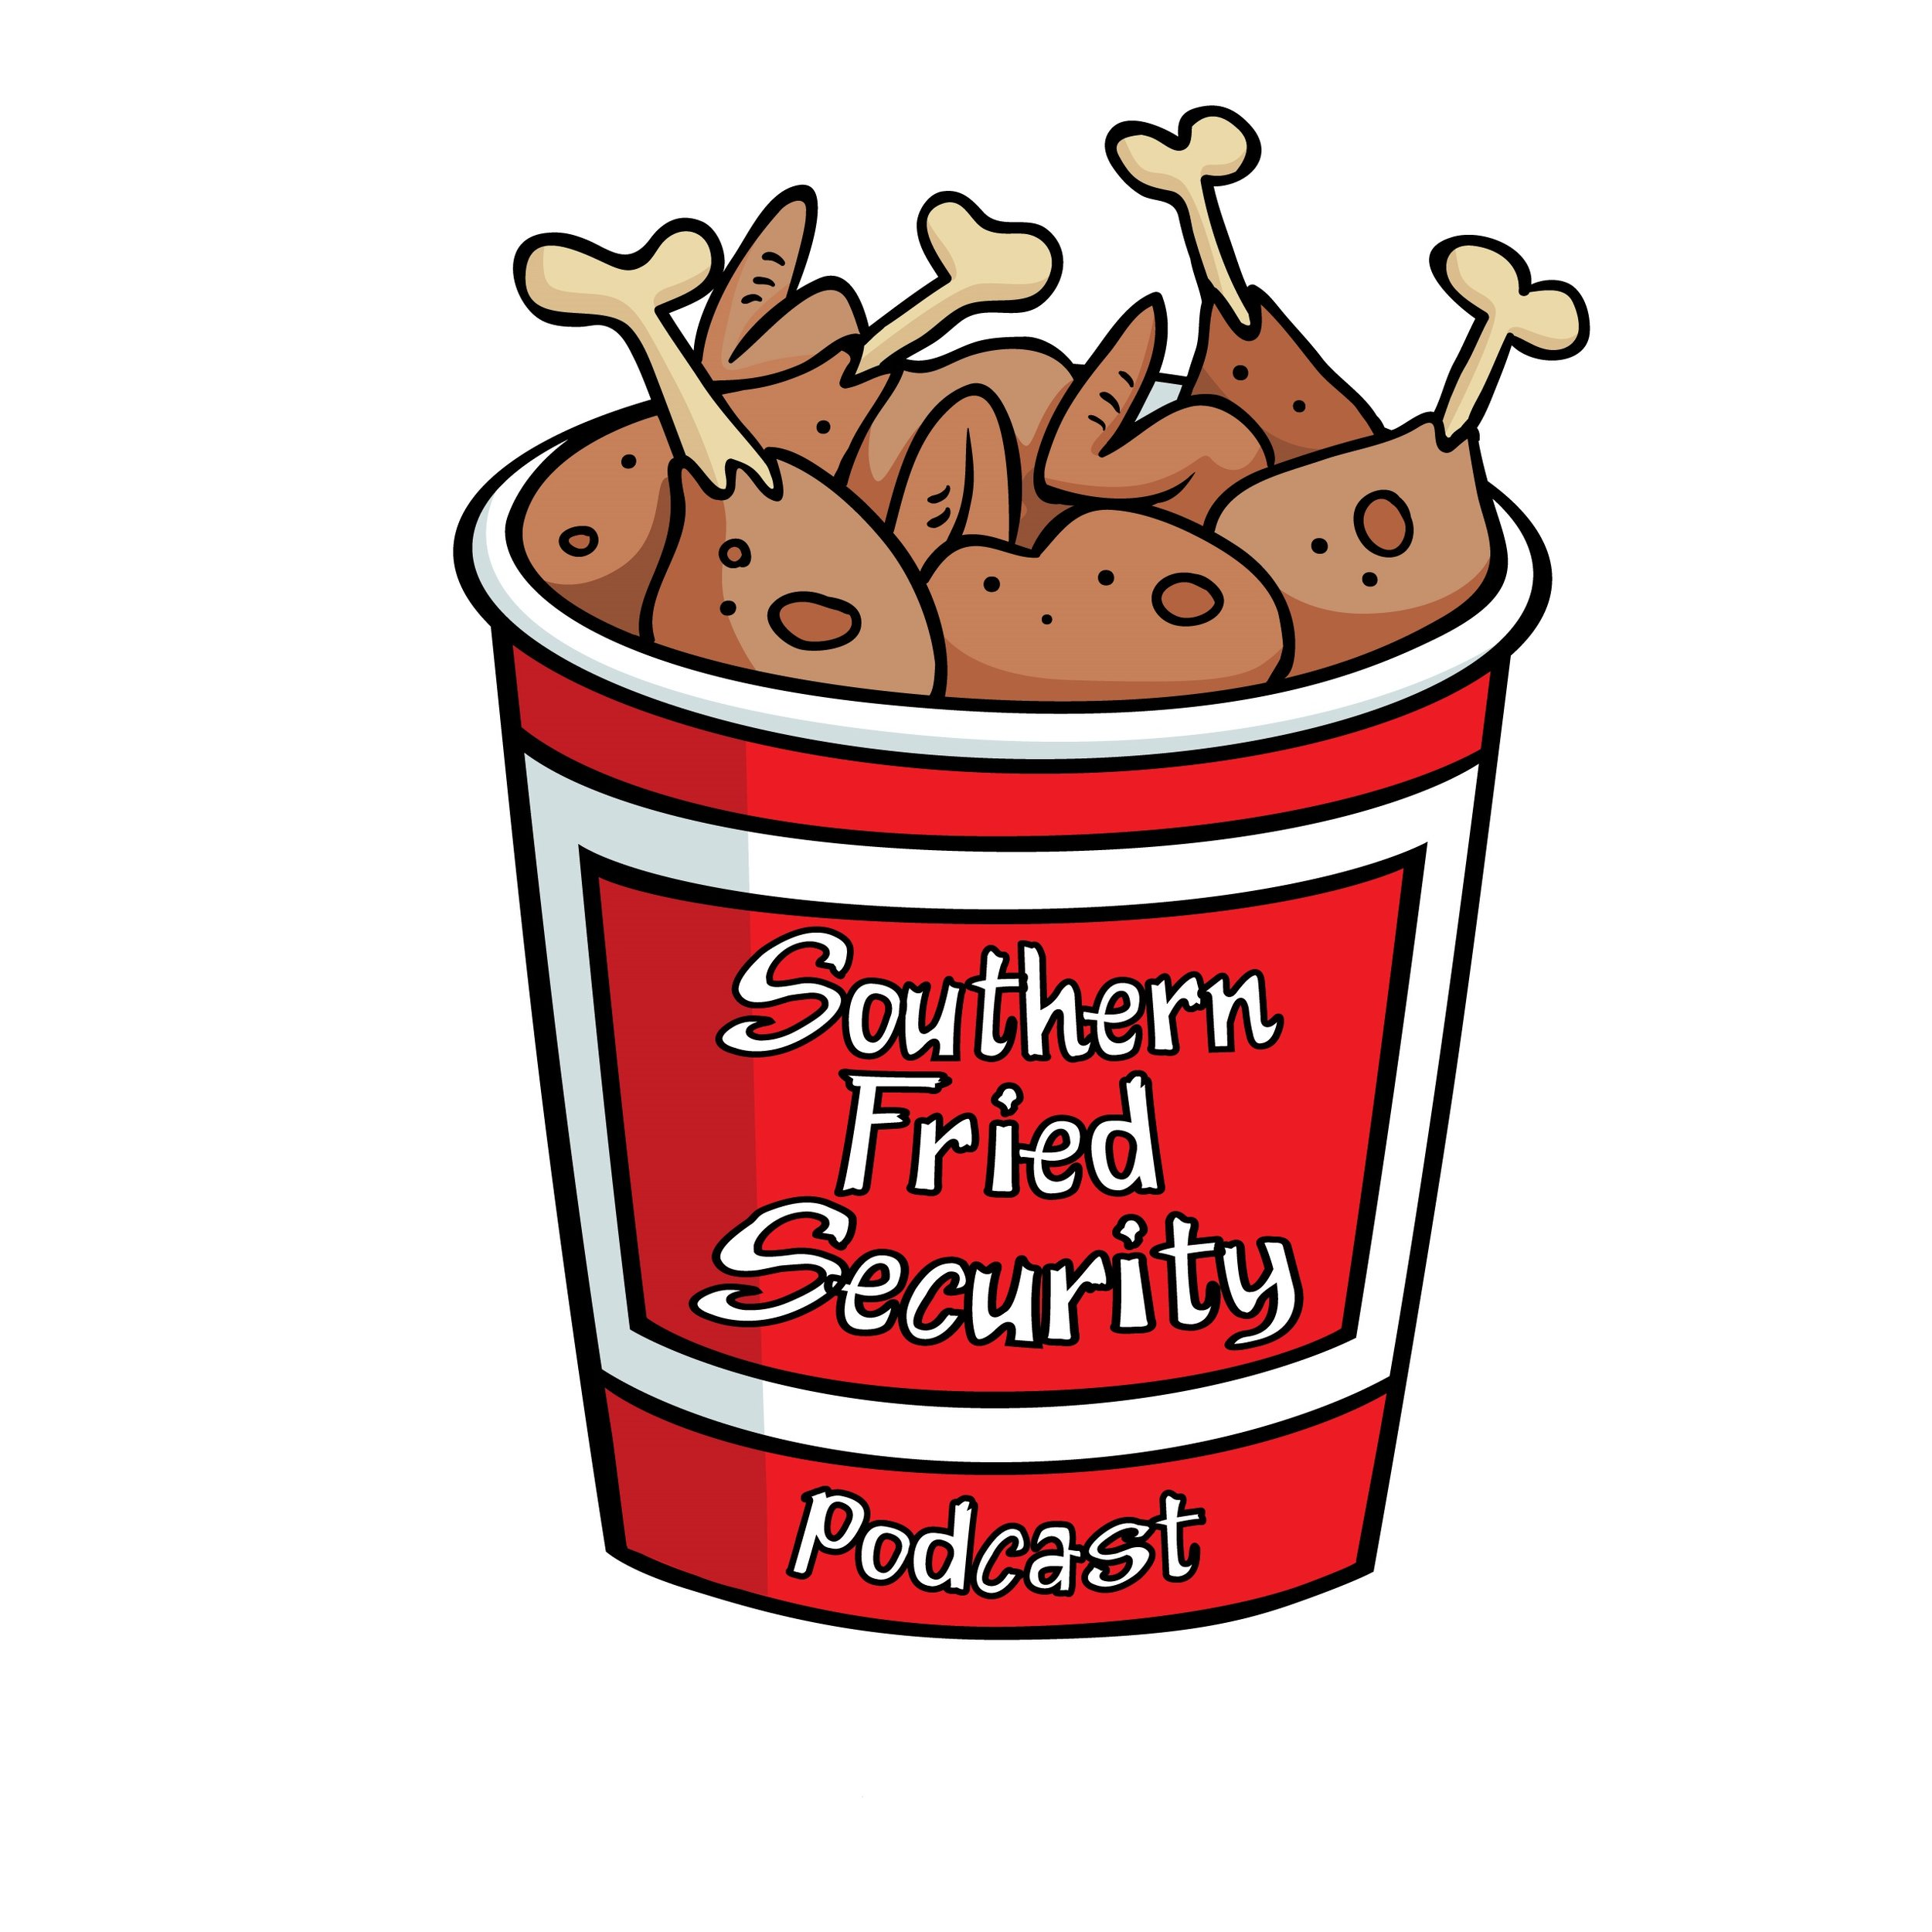 Southern Fried Security Podcast.jpg